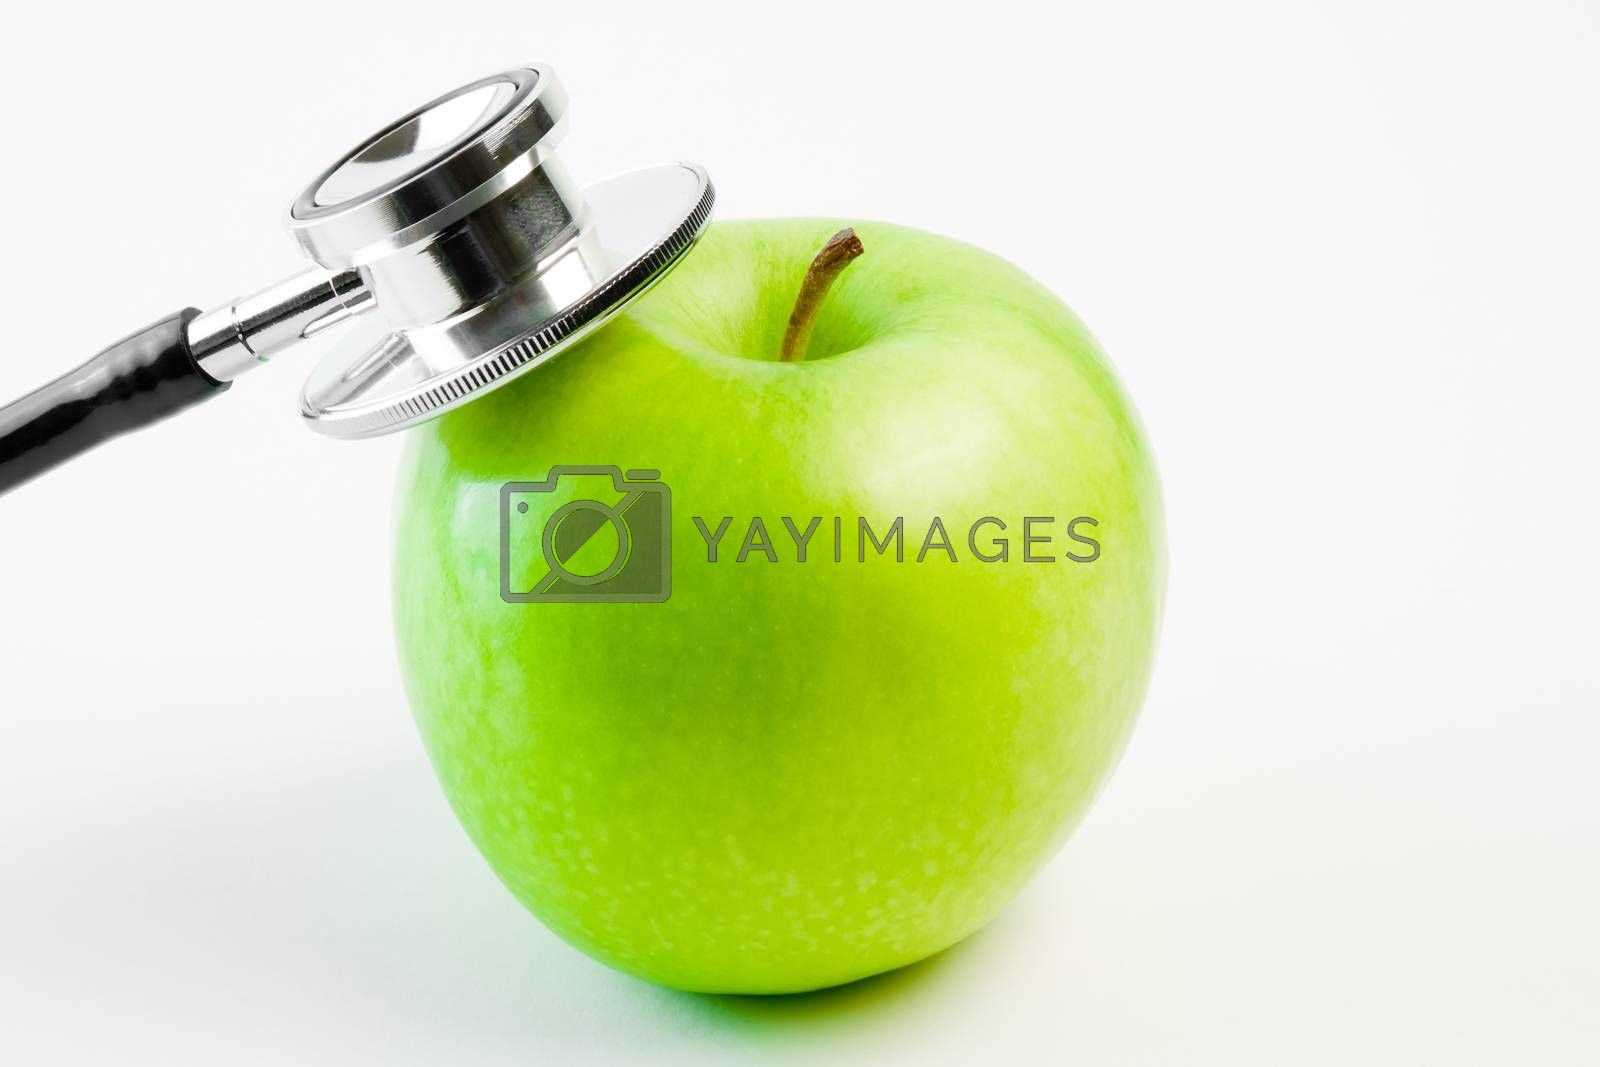 detail of medical stethoscope and apple on a white background